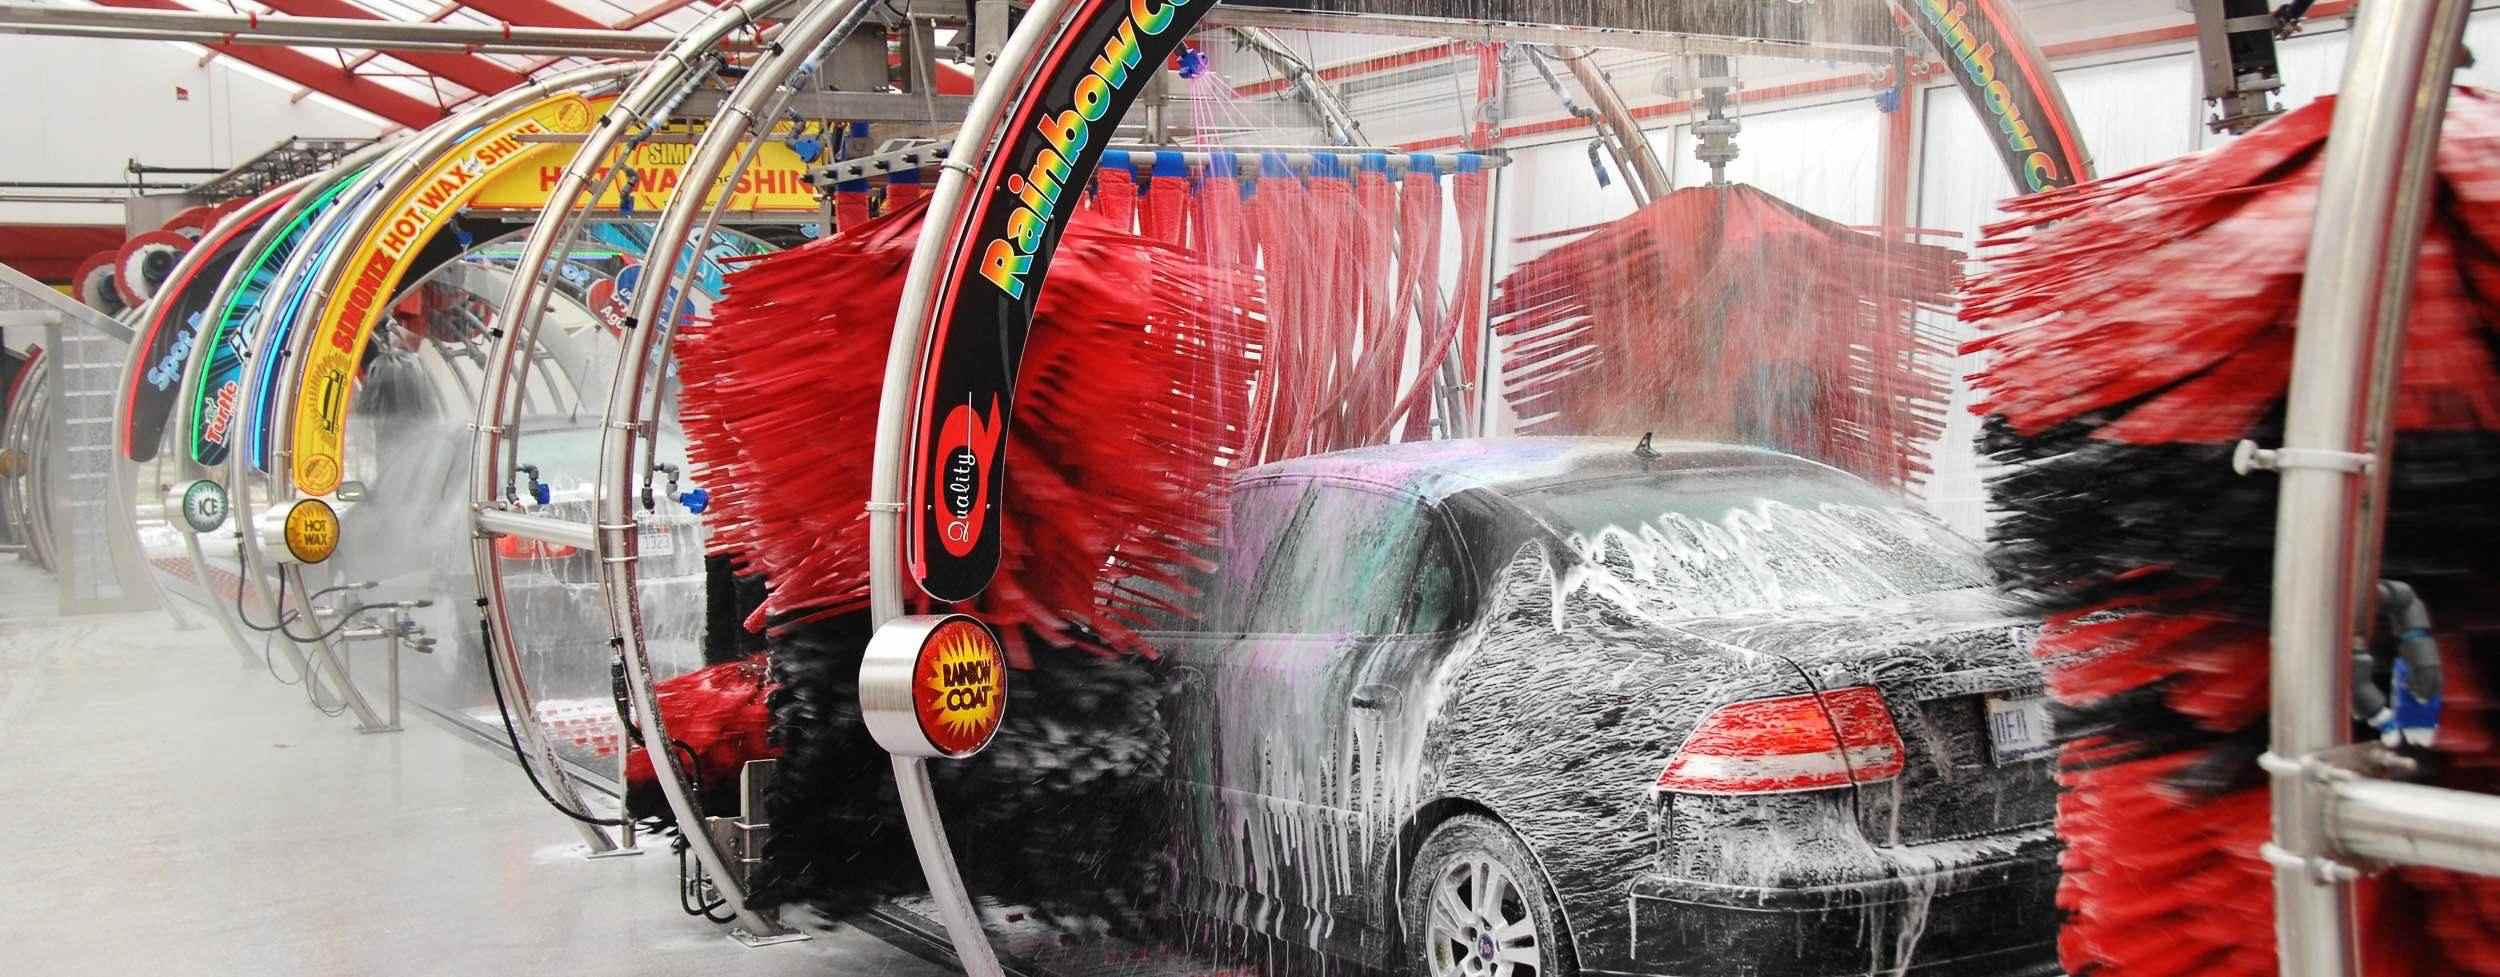 Tommy car wash systems car in tommy car wash tunnel solutioingenieria Image collections